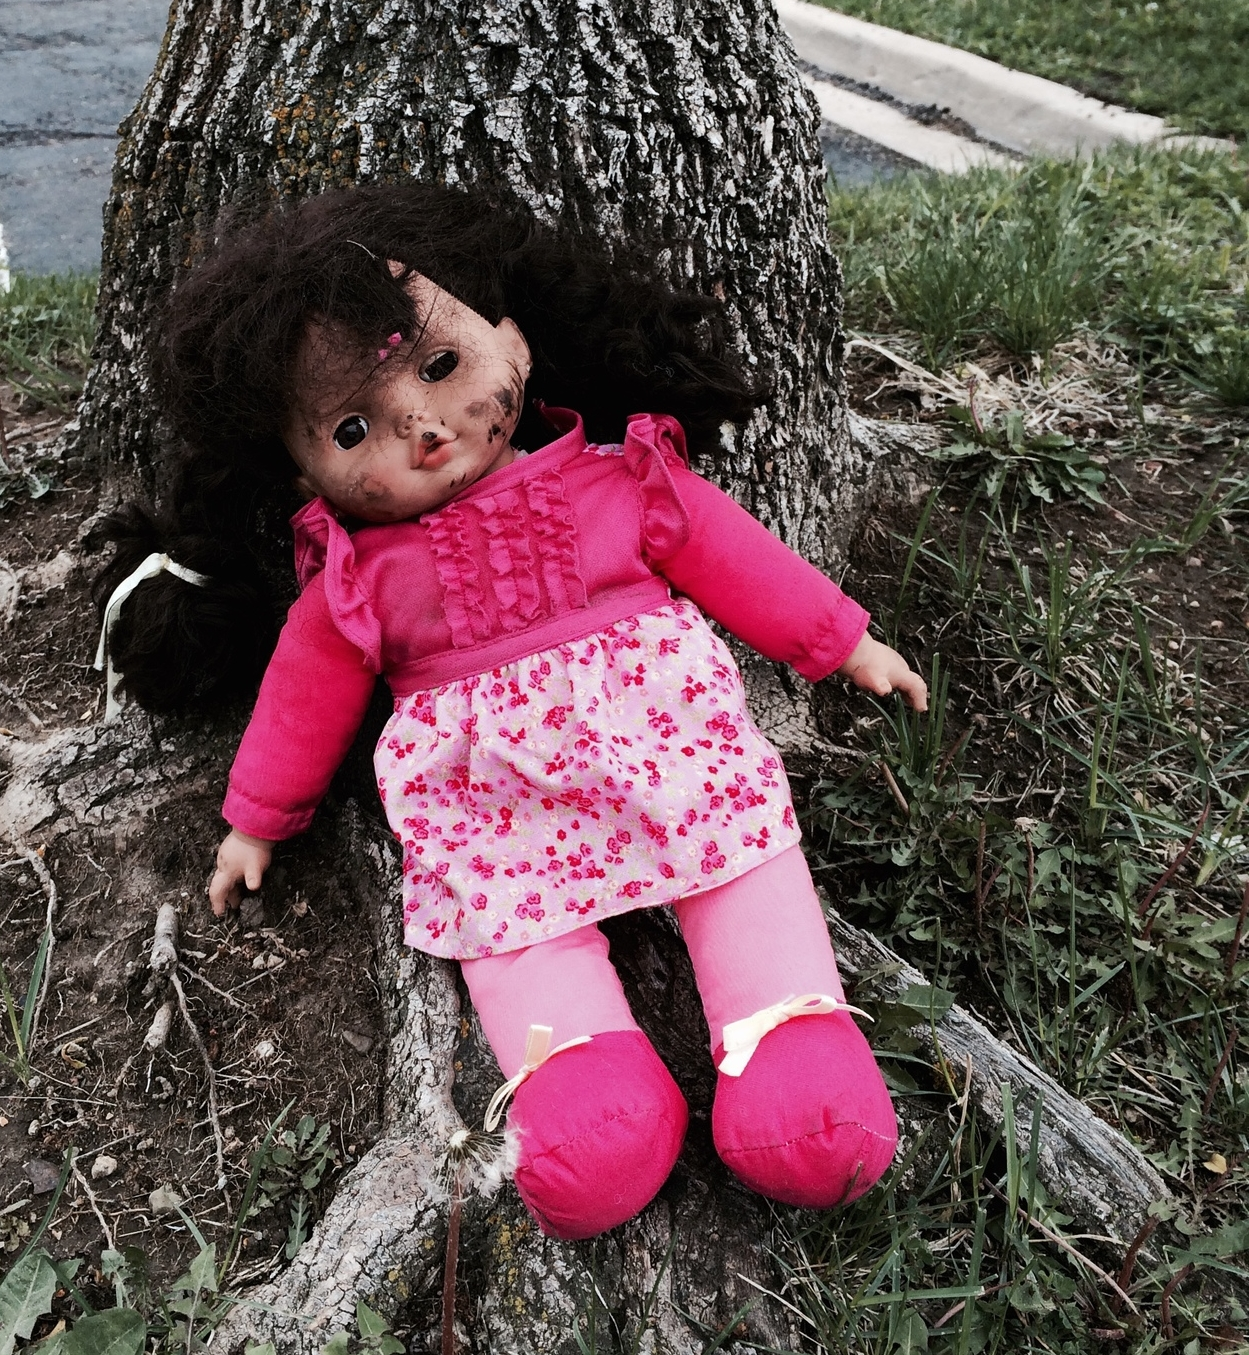 Everyone has a bad day from time to time. A doll outside the drug testing office.